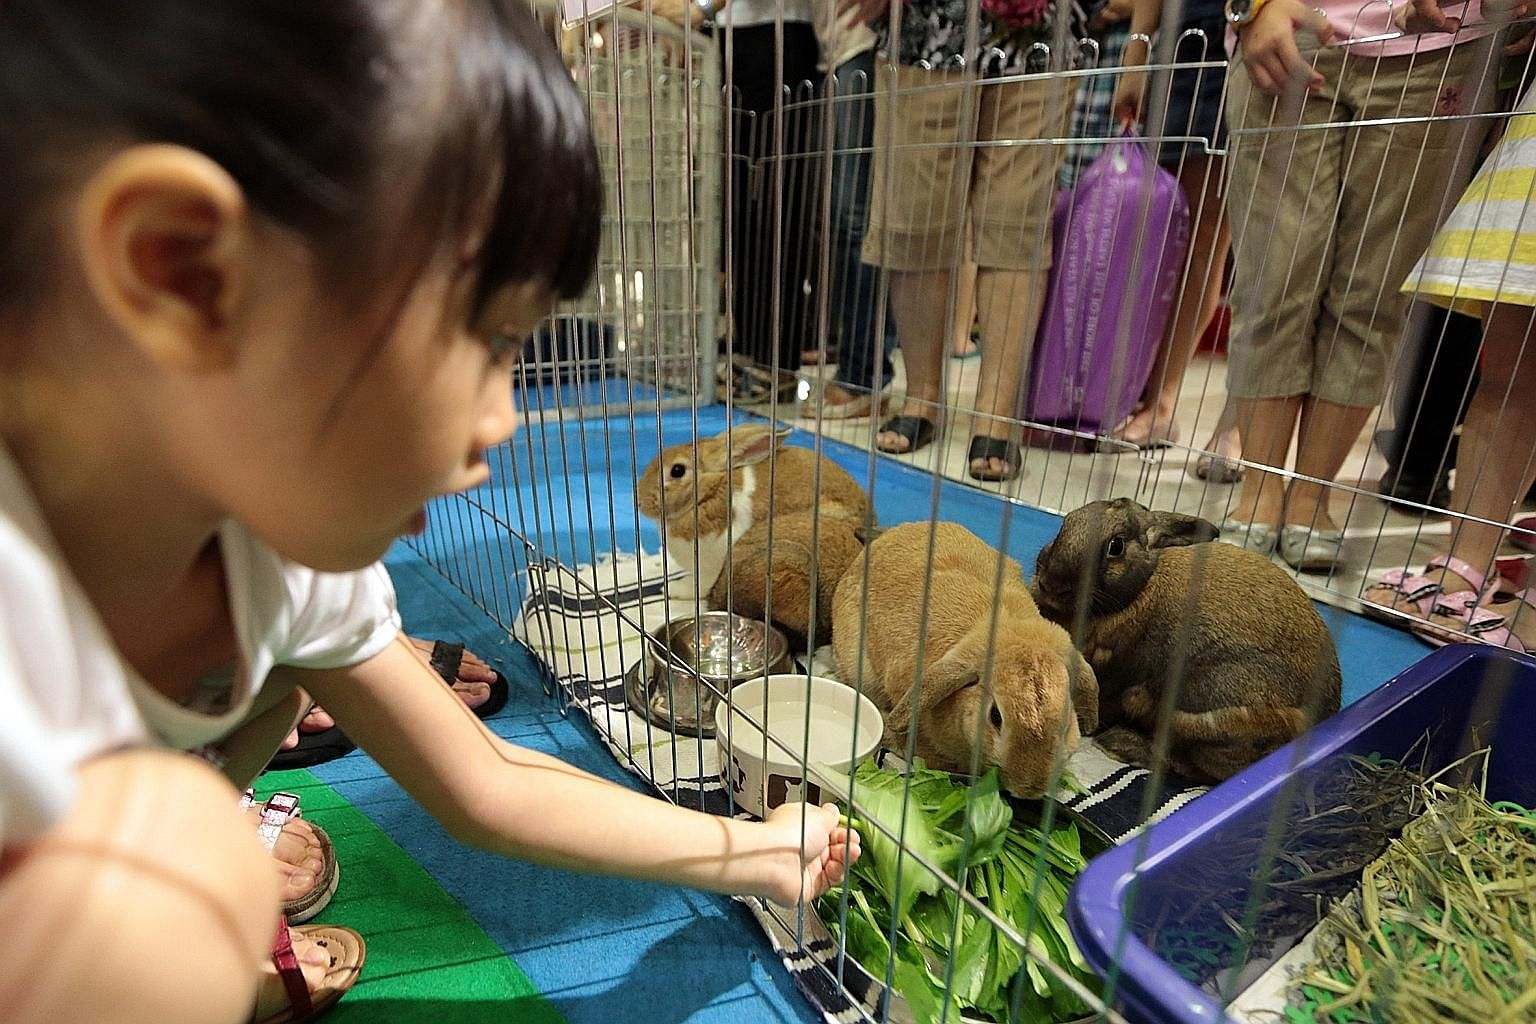 A girl playing with rabbits put up for adoption. Animal welfare groups are often called in by the authorities to rescue animals and then left to their own devices, even though they may lack the resources to manage such cases.